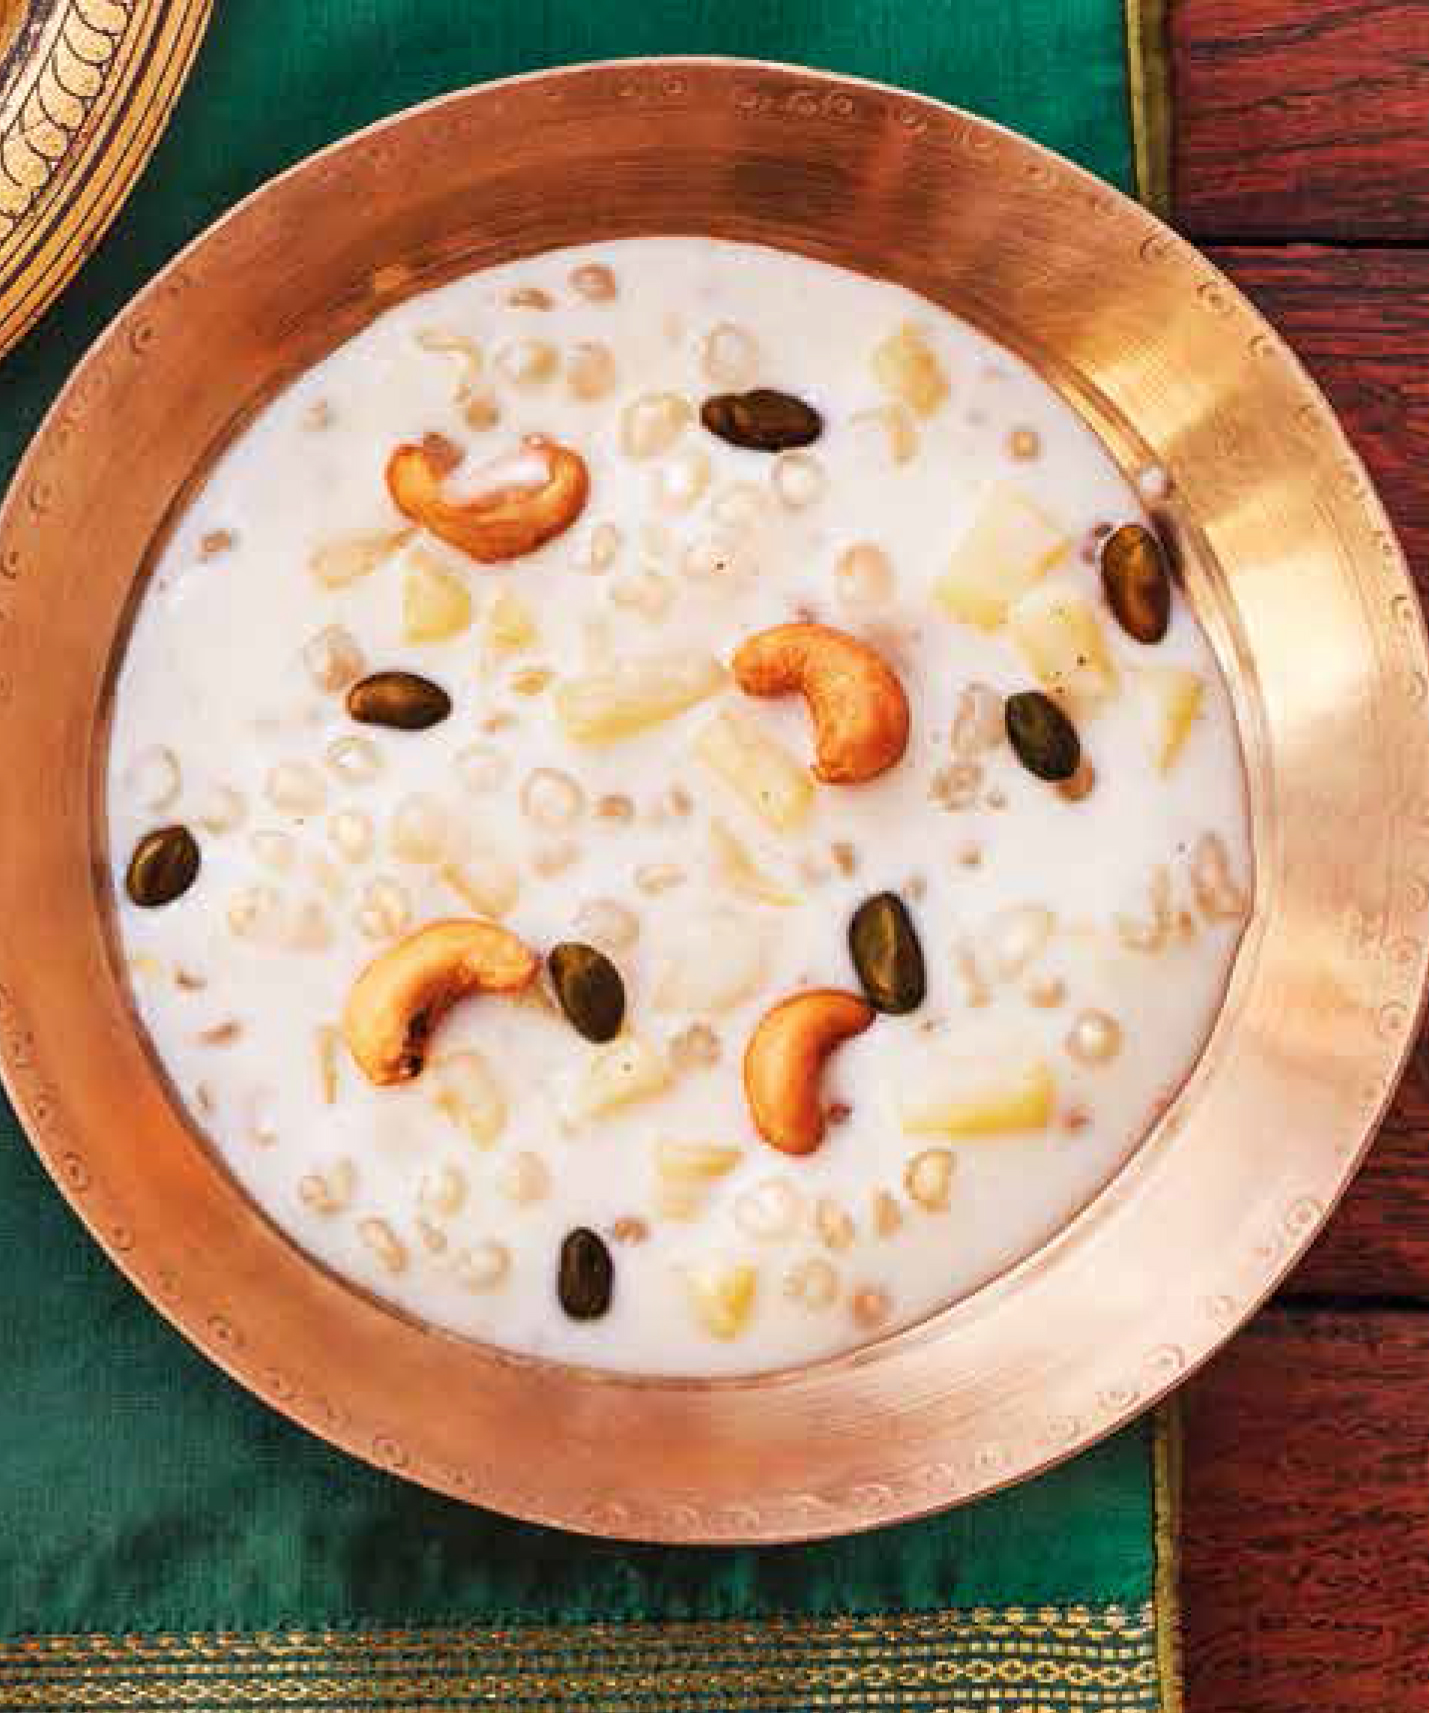 Pineapple and tapioca kheer